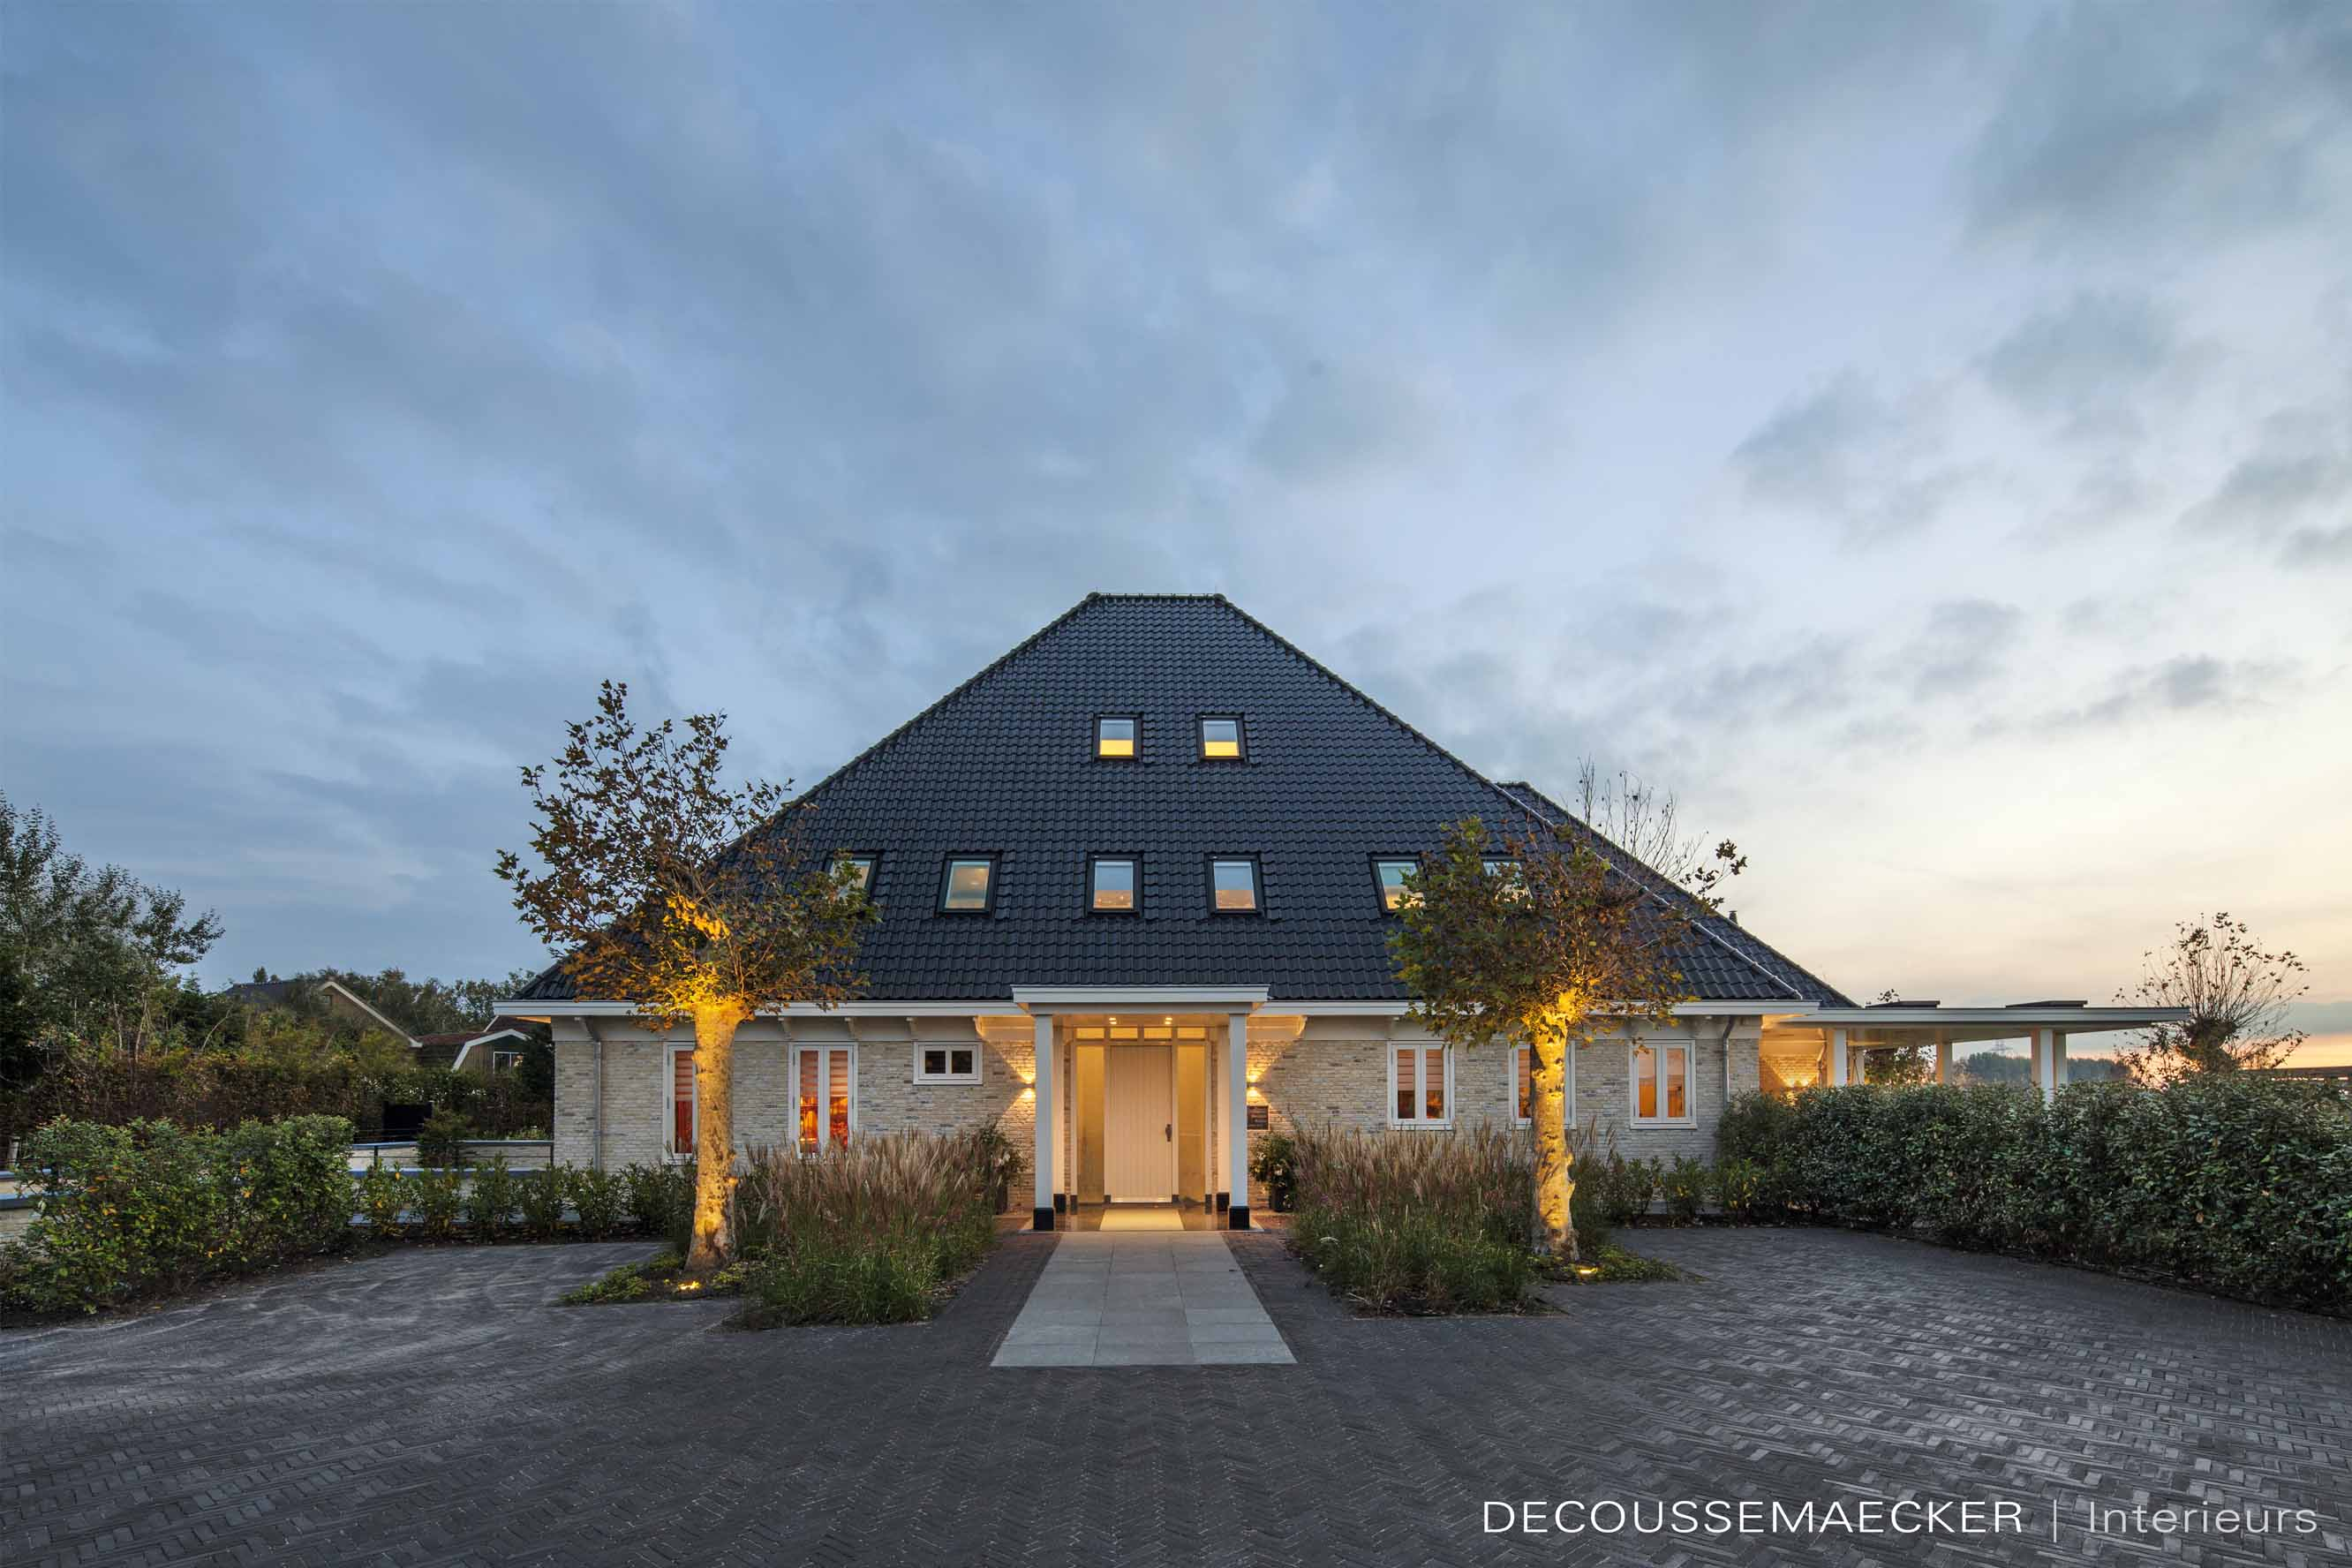 Farmhouse Remodelled into Luxury Residence in North Holland by Guido Decoussemaecker-16